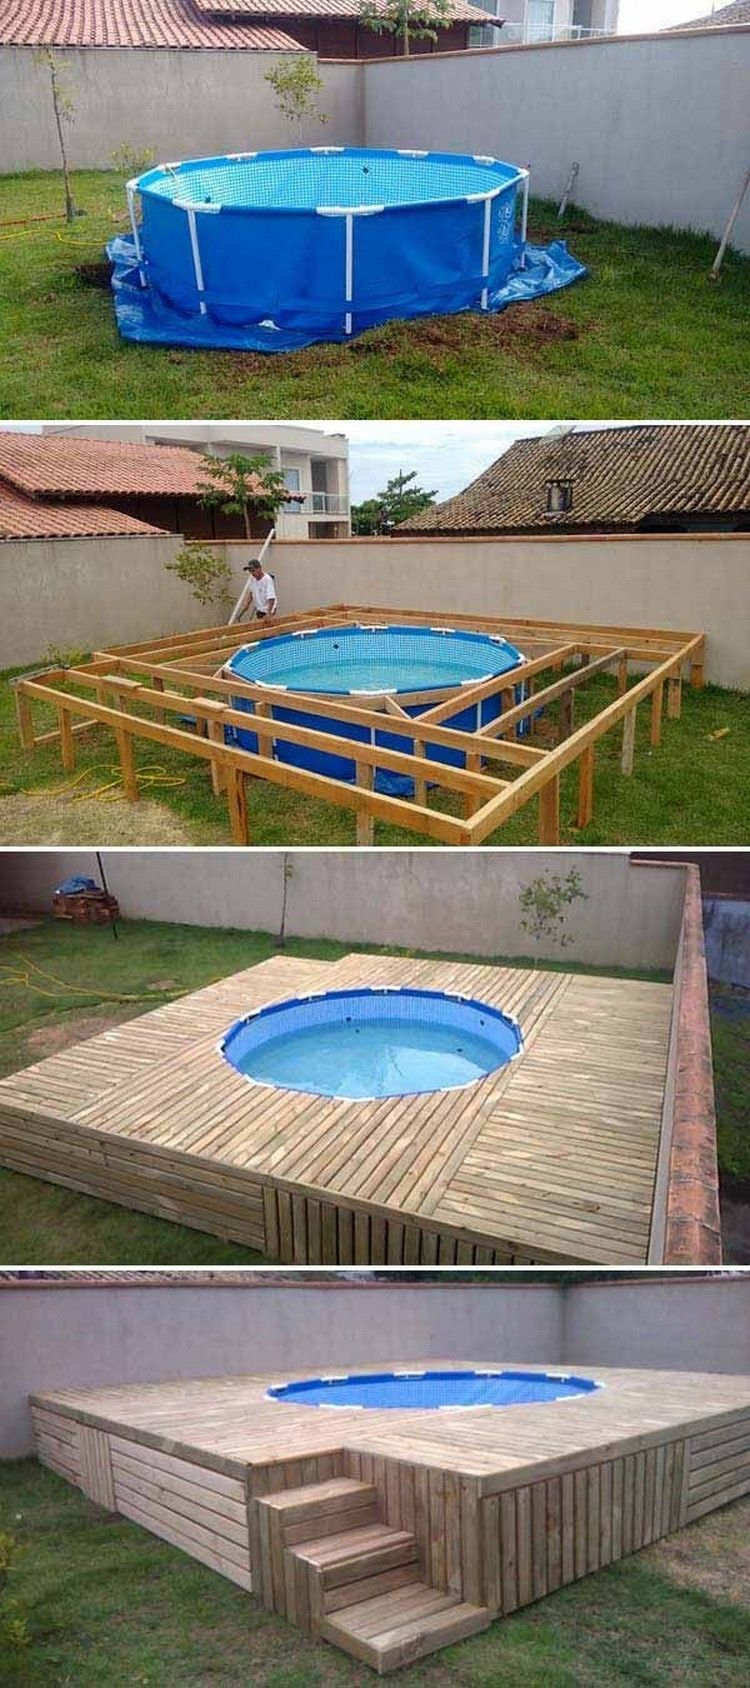 Want to have a pool party? Then you can check out this pool pallet wood project! We have first got a huge pool and placed it in